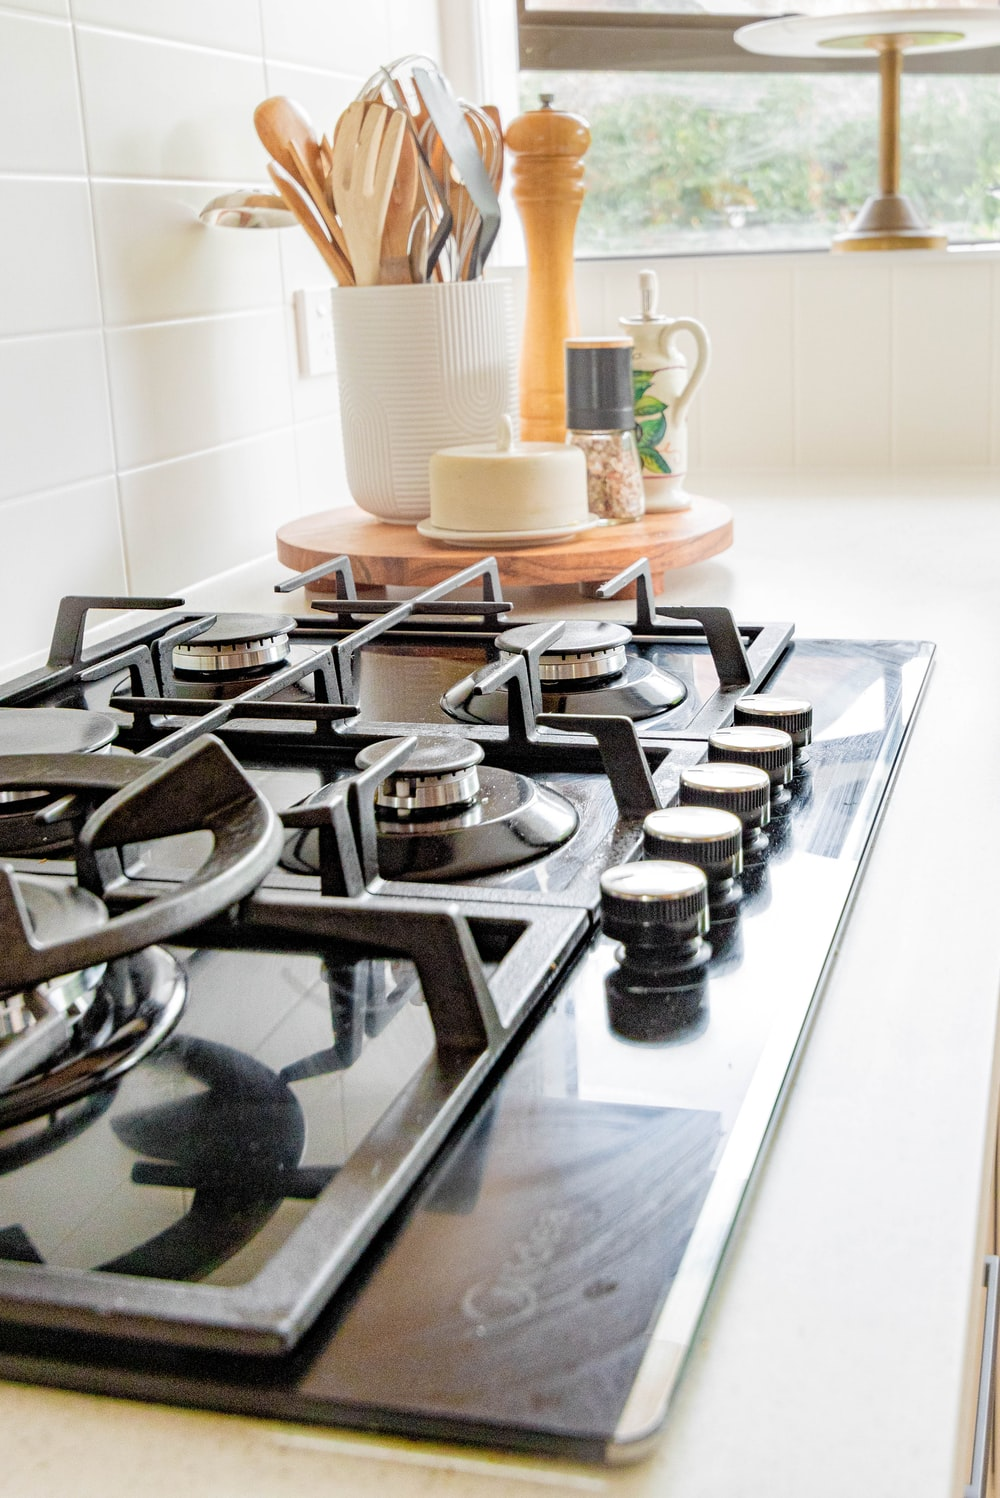 black and white chess pieces on black and silver gas stove